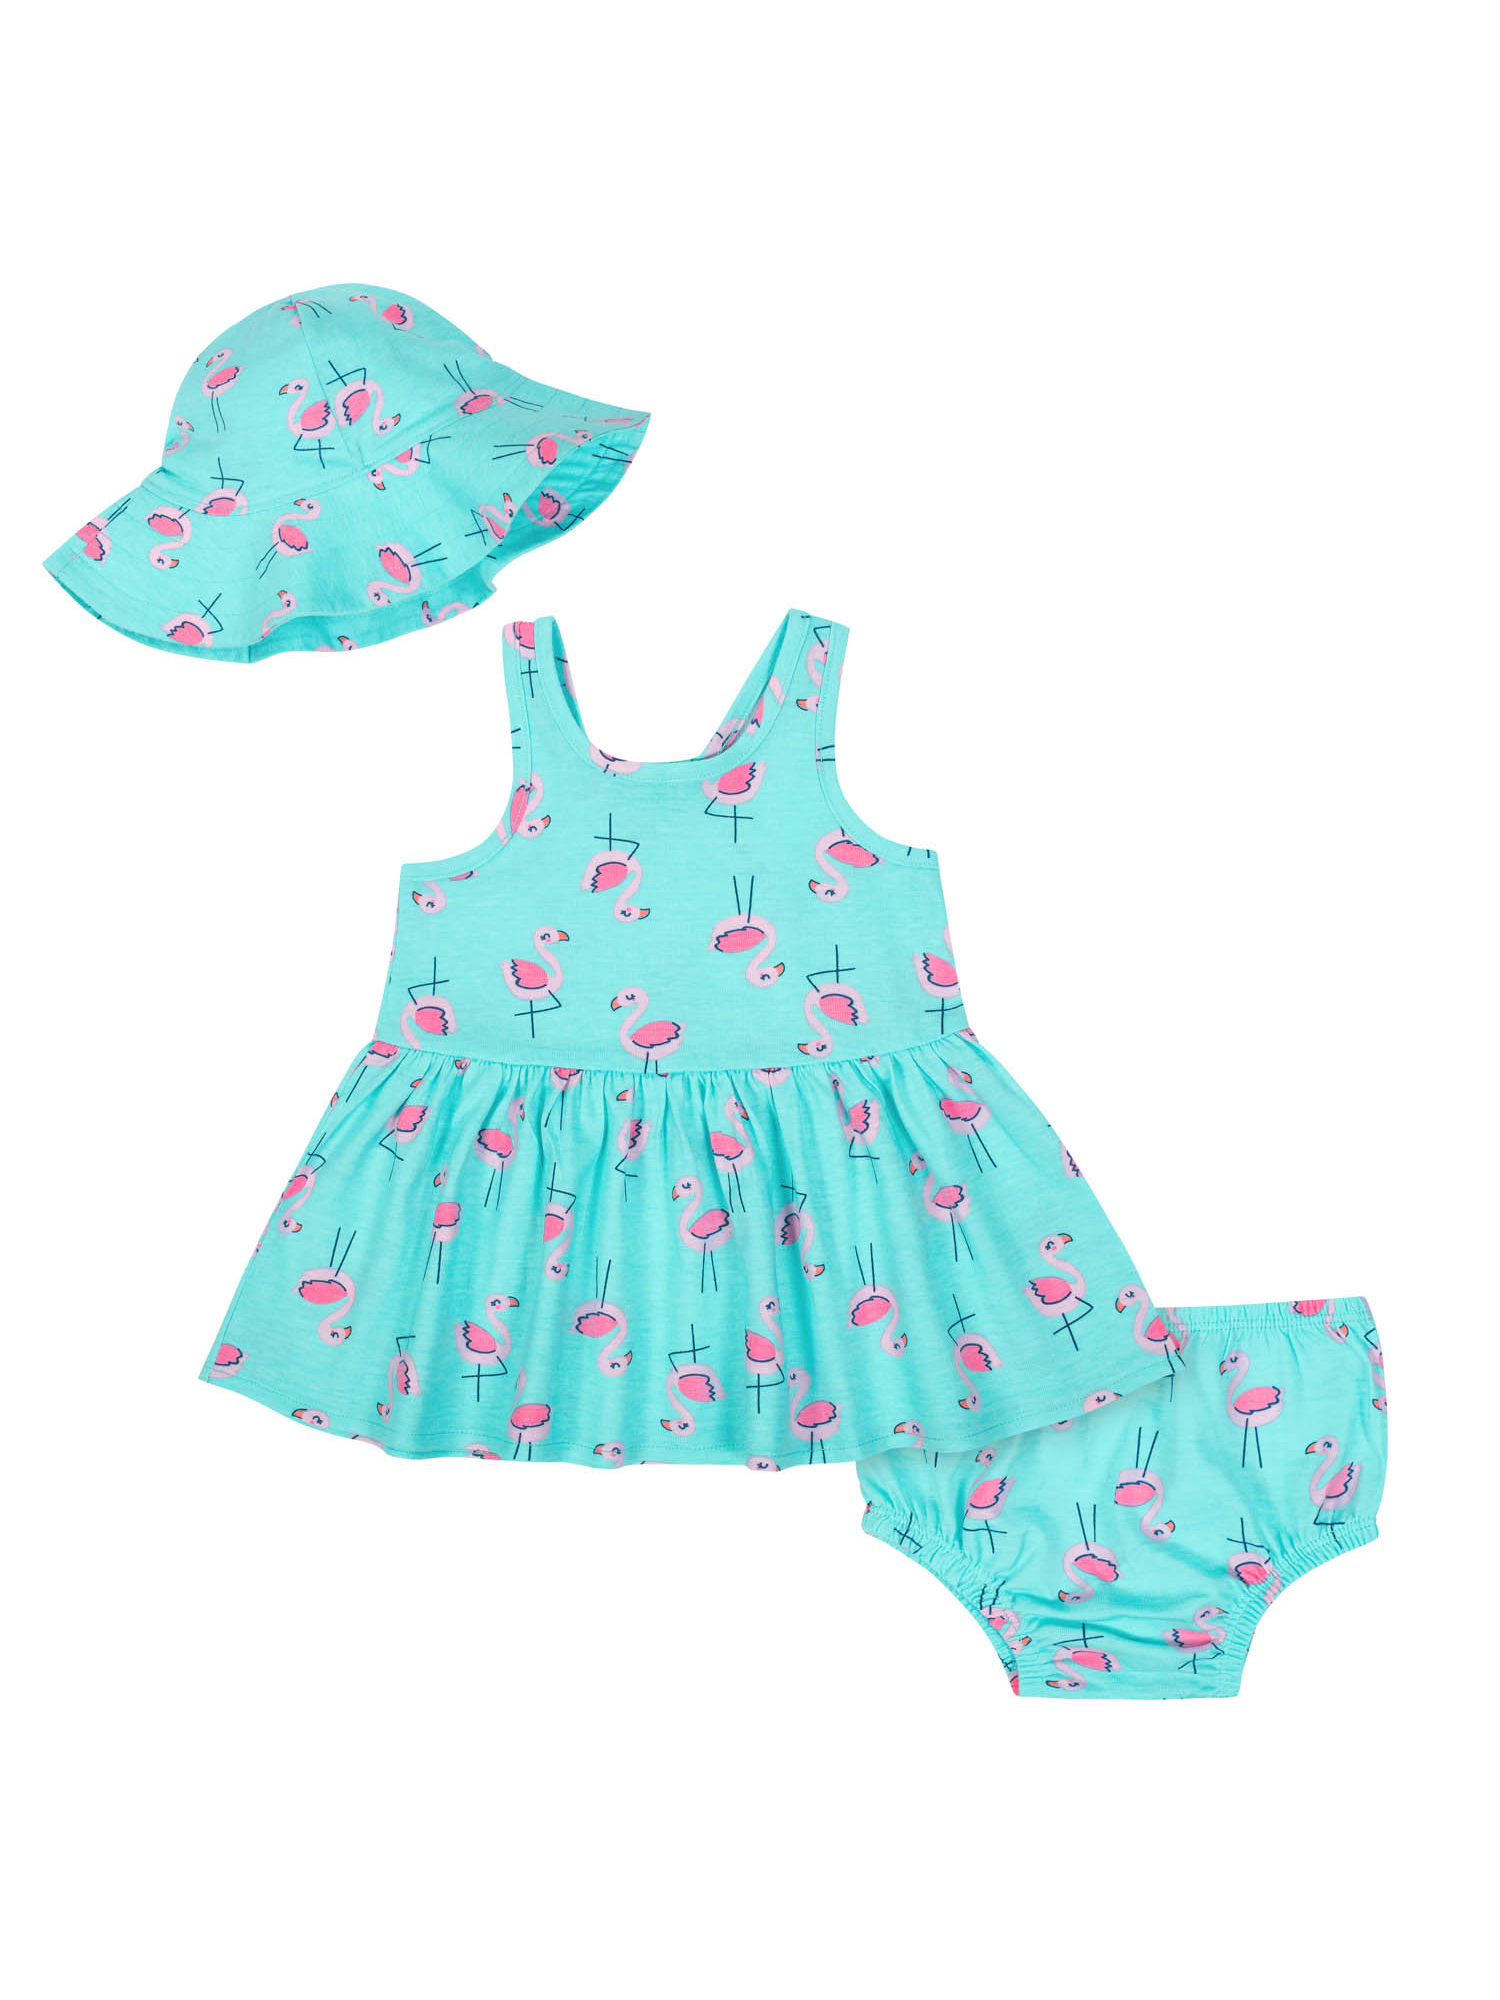 Sleeveless Dress with Diaper Cover and Sun Hat Outfit Set, 3pc (Baby Girls)